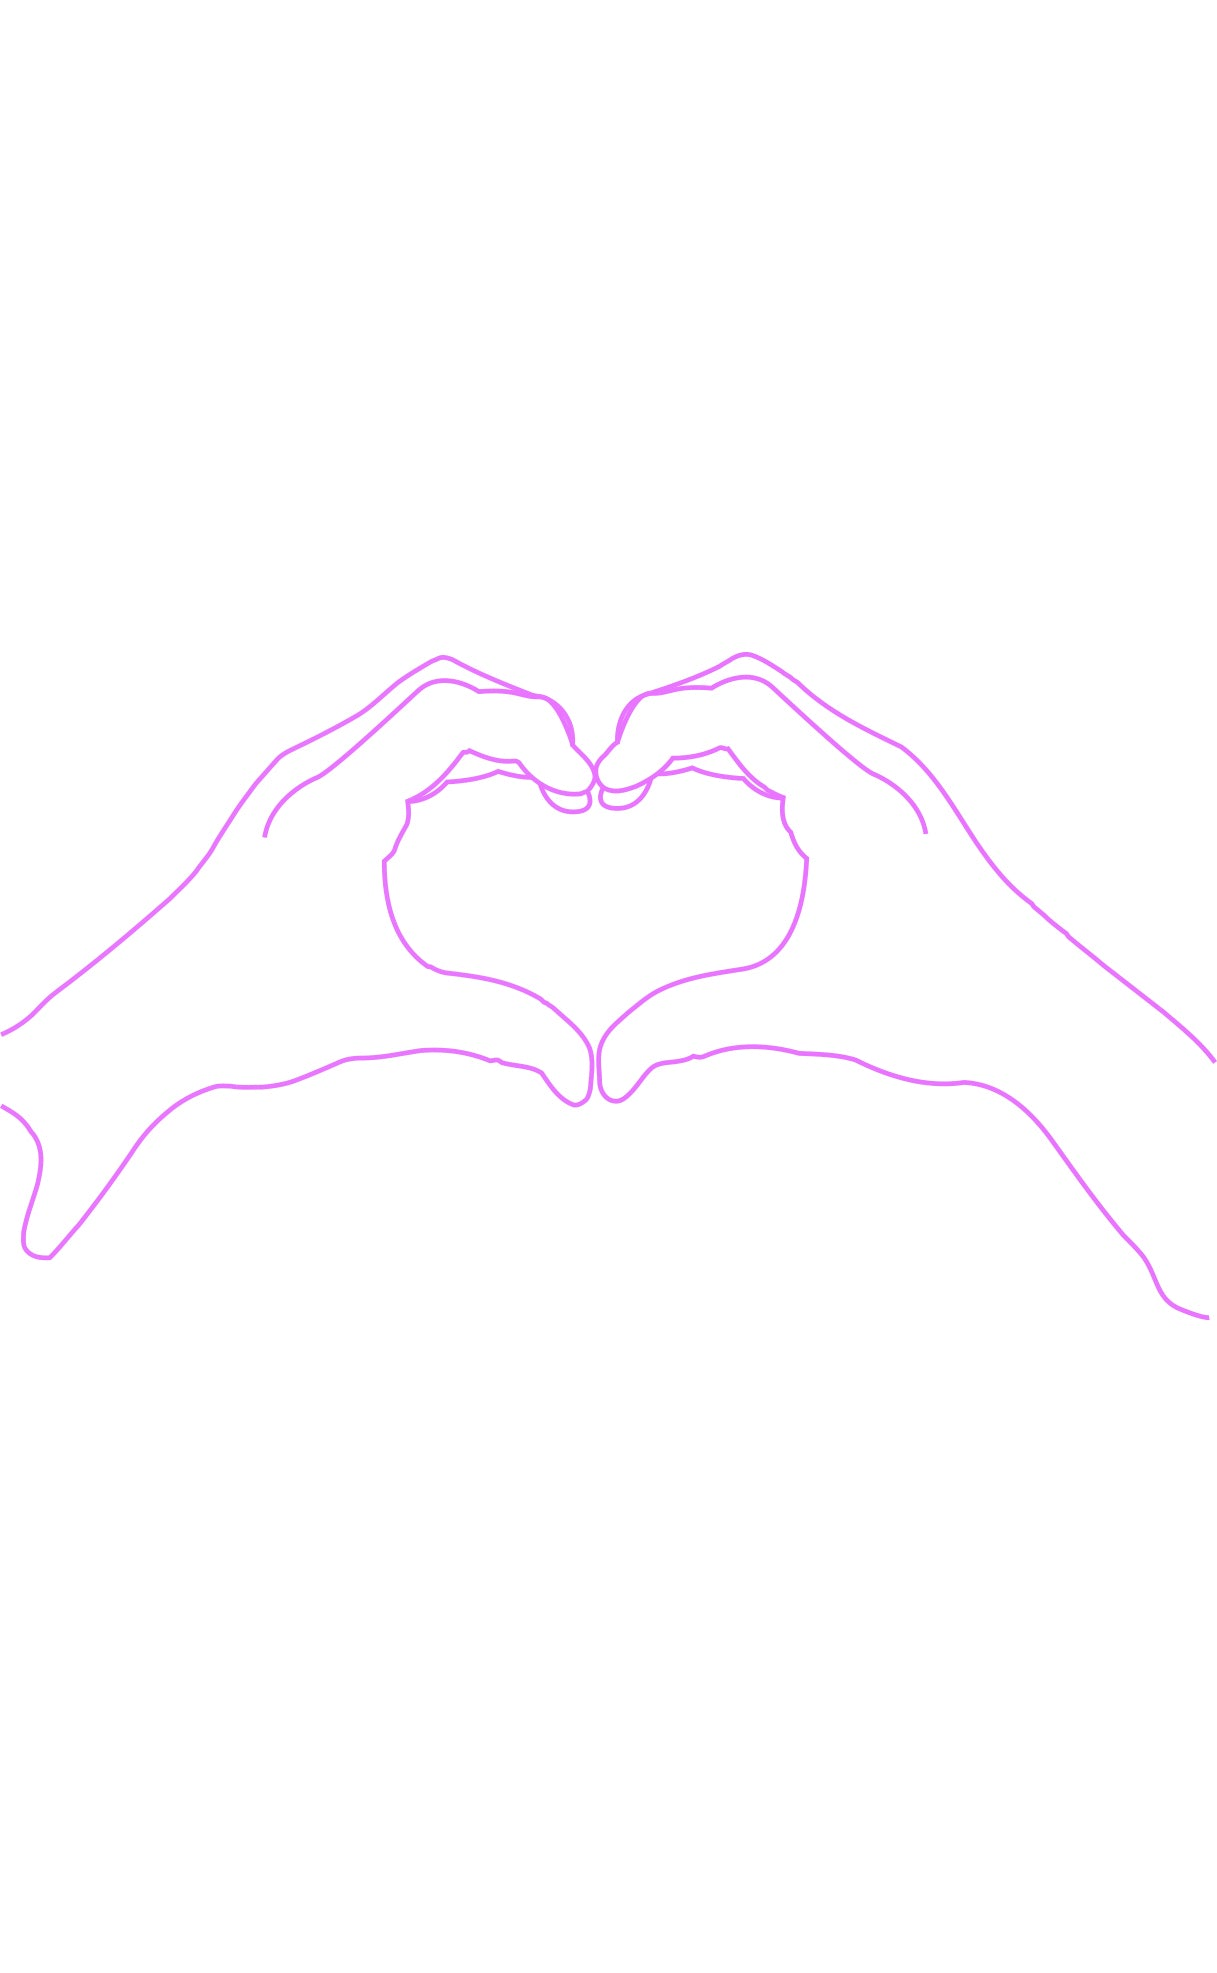 white and purple wall art, two hands making a heart shape